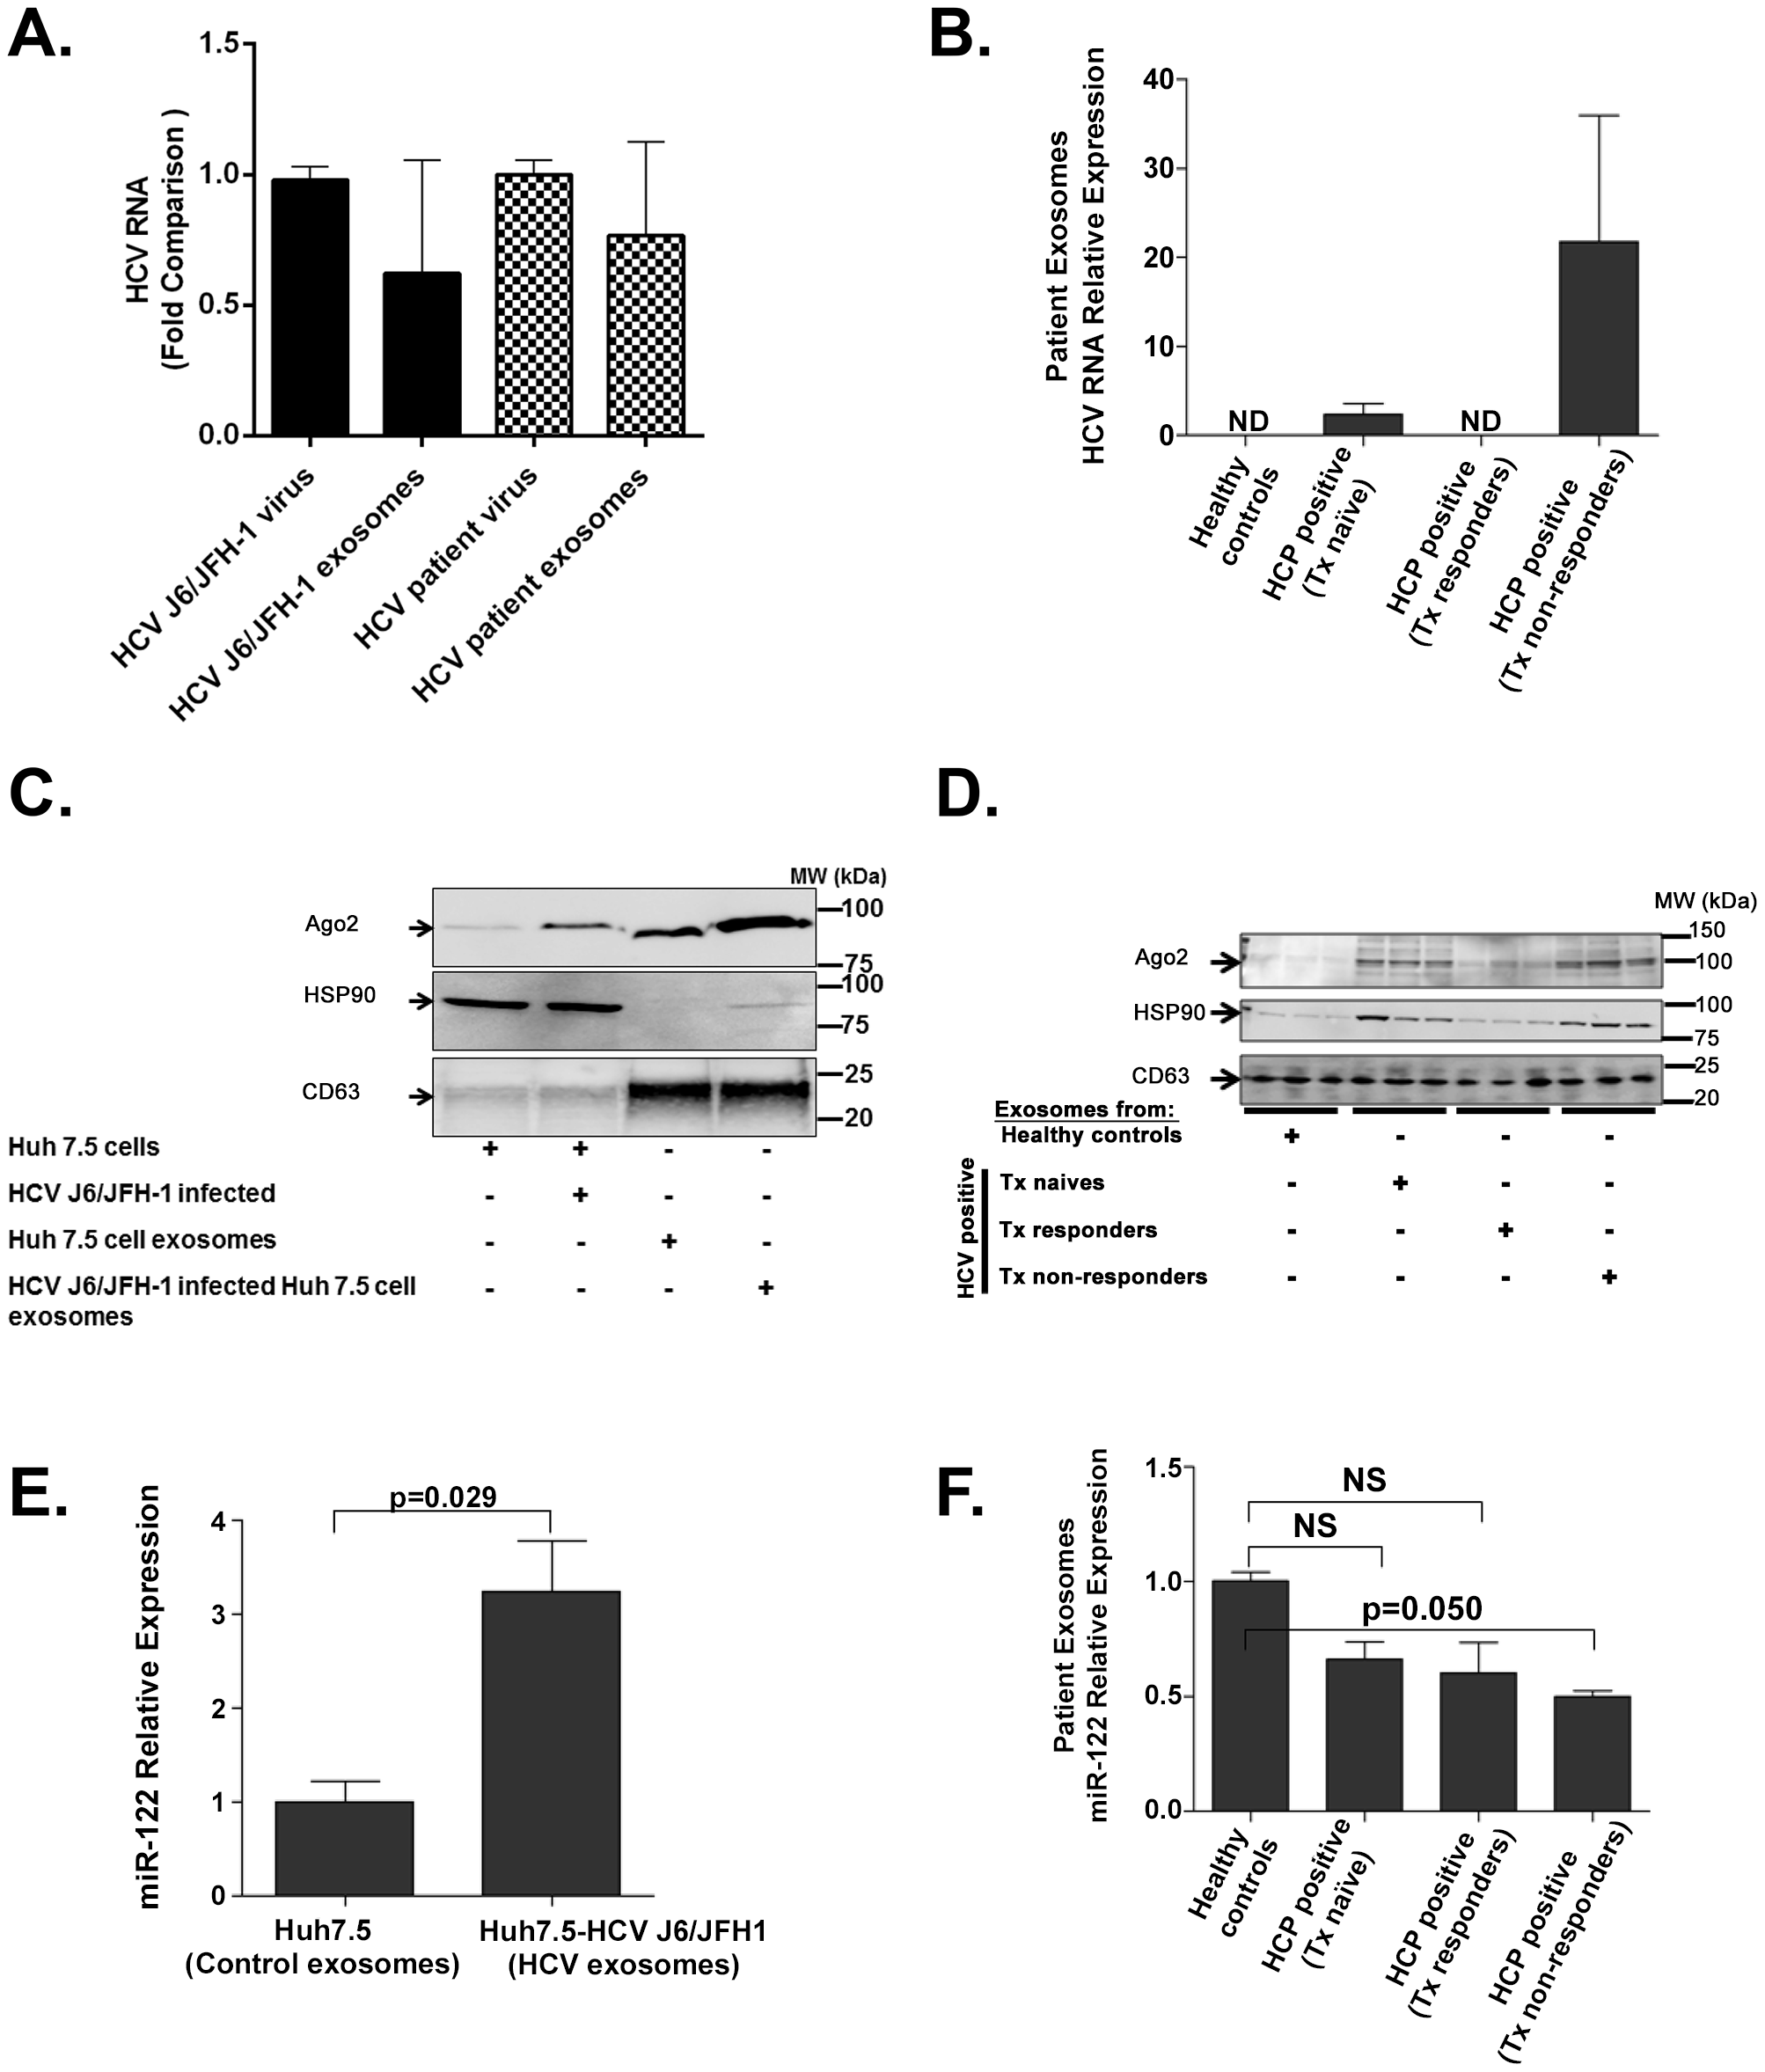 Exosomes from HCV J6/JFH-1 infected Huh7.5 cells and sera of HCV infected patients contain HCV RNA, miR-122, Ago2, and HSP90.